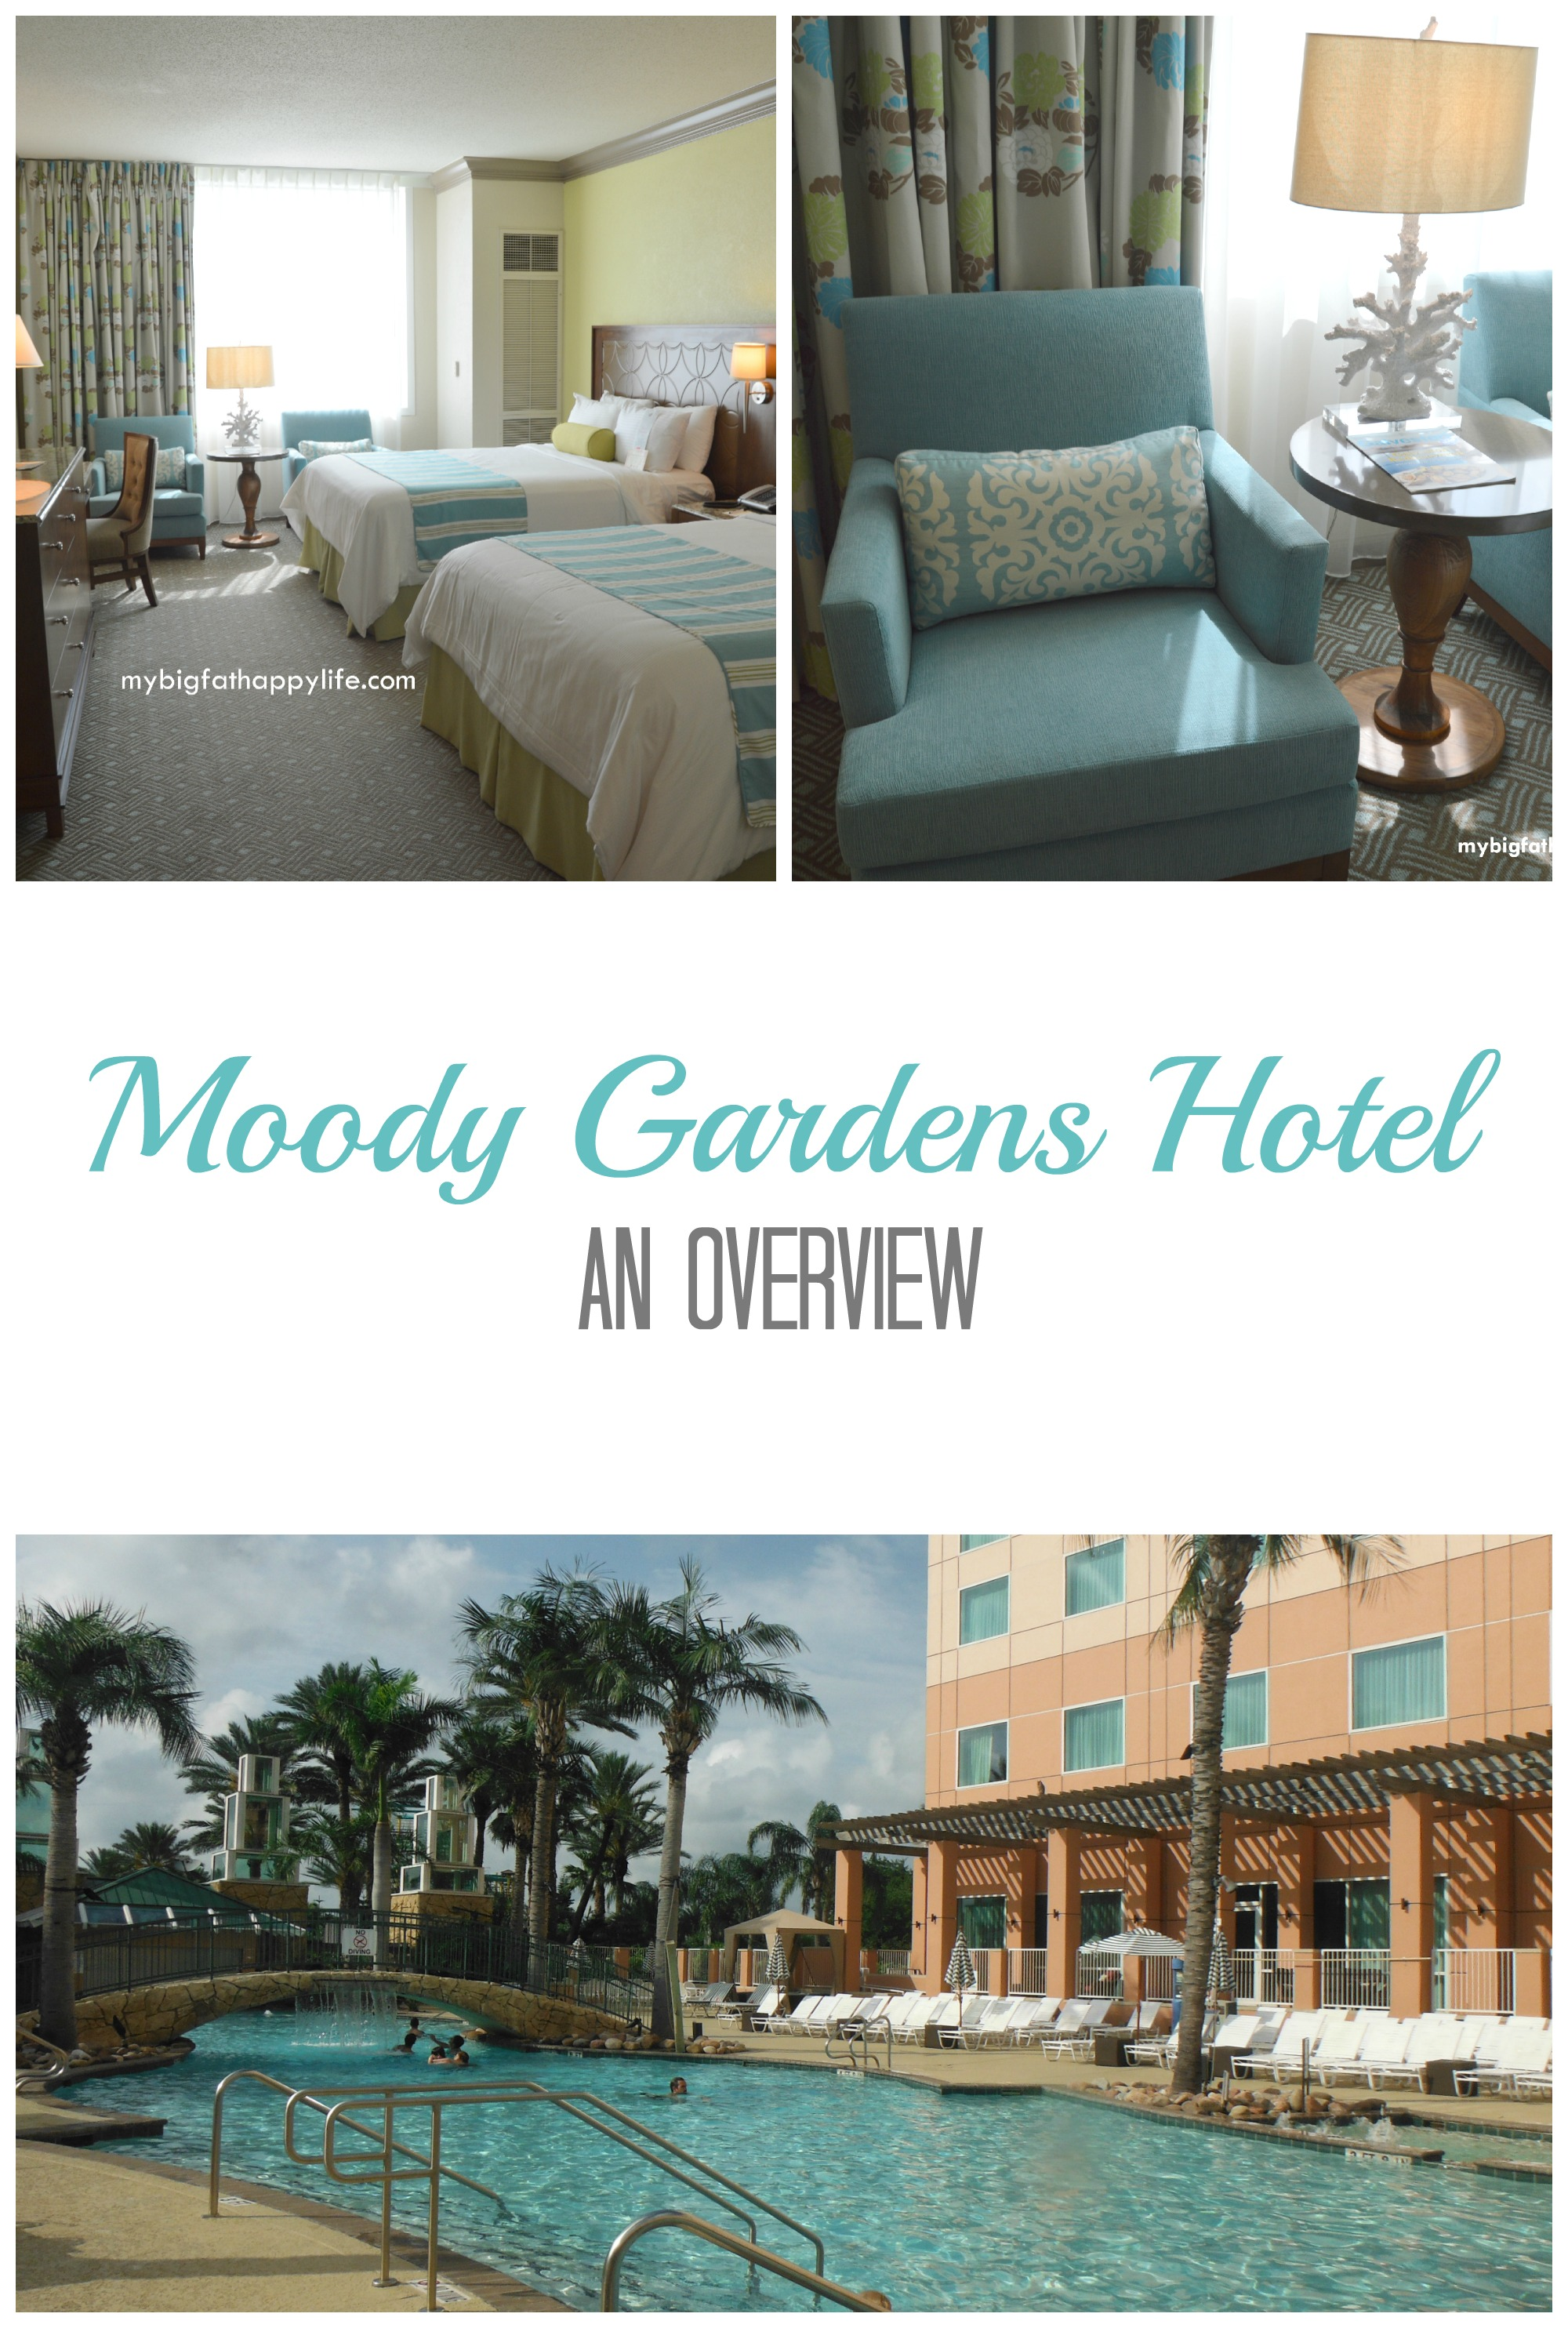 Moody Gardens Hotel - An Overview - My Big Fat Happy Life